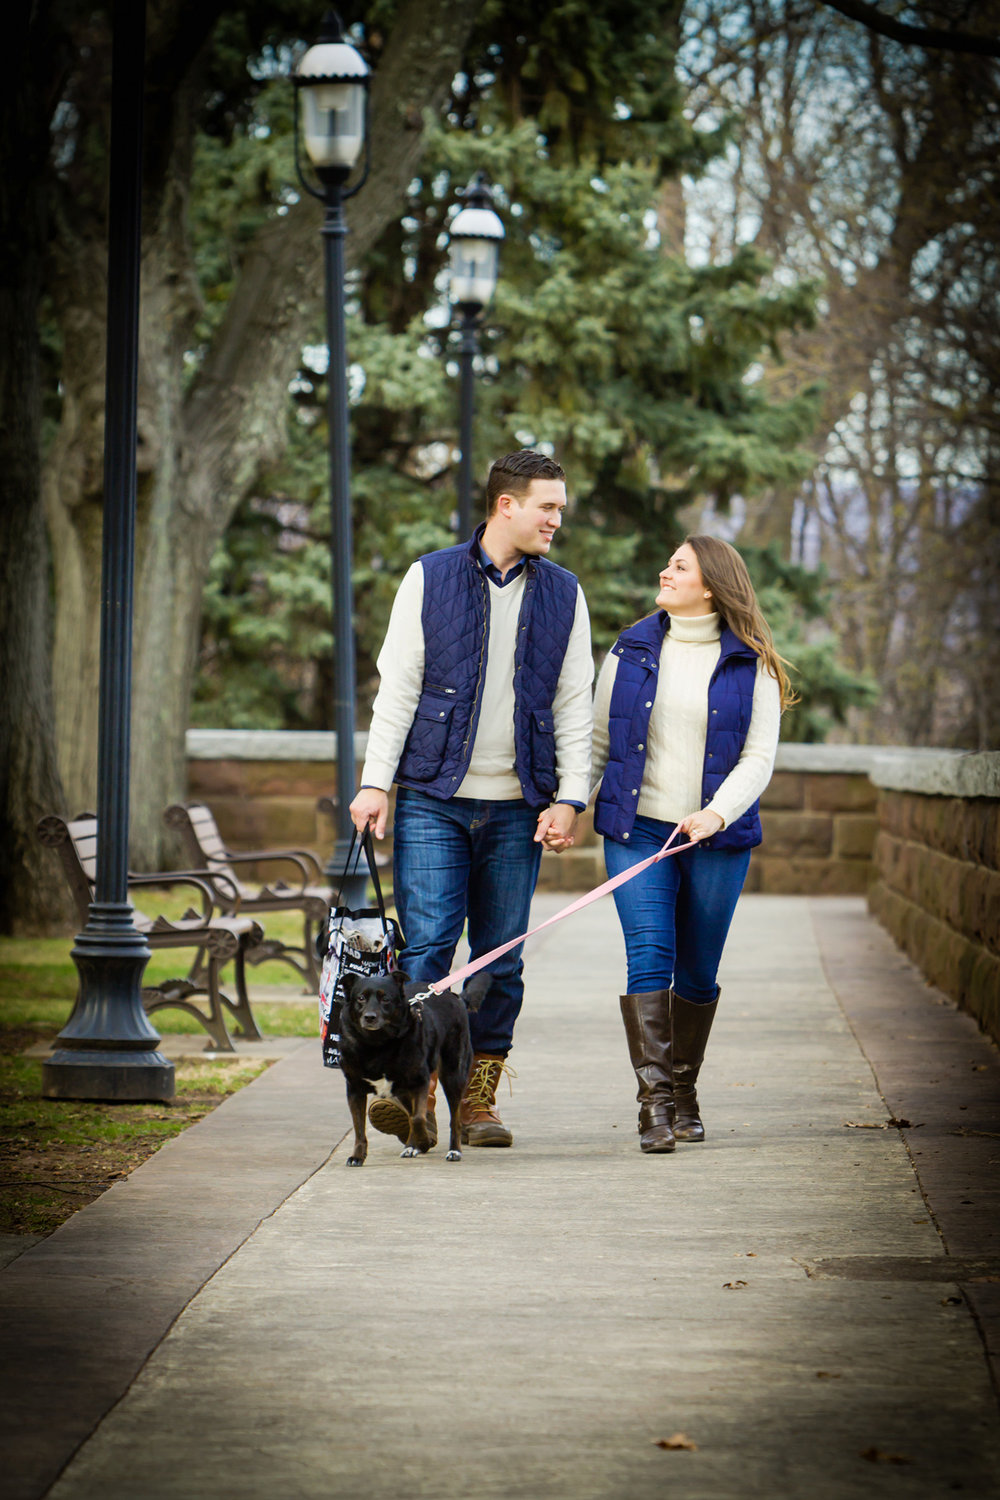 bergen_county_new_jersey_engagement_photography_0029.jpg